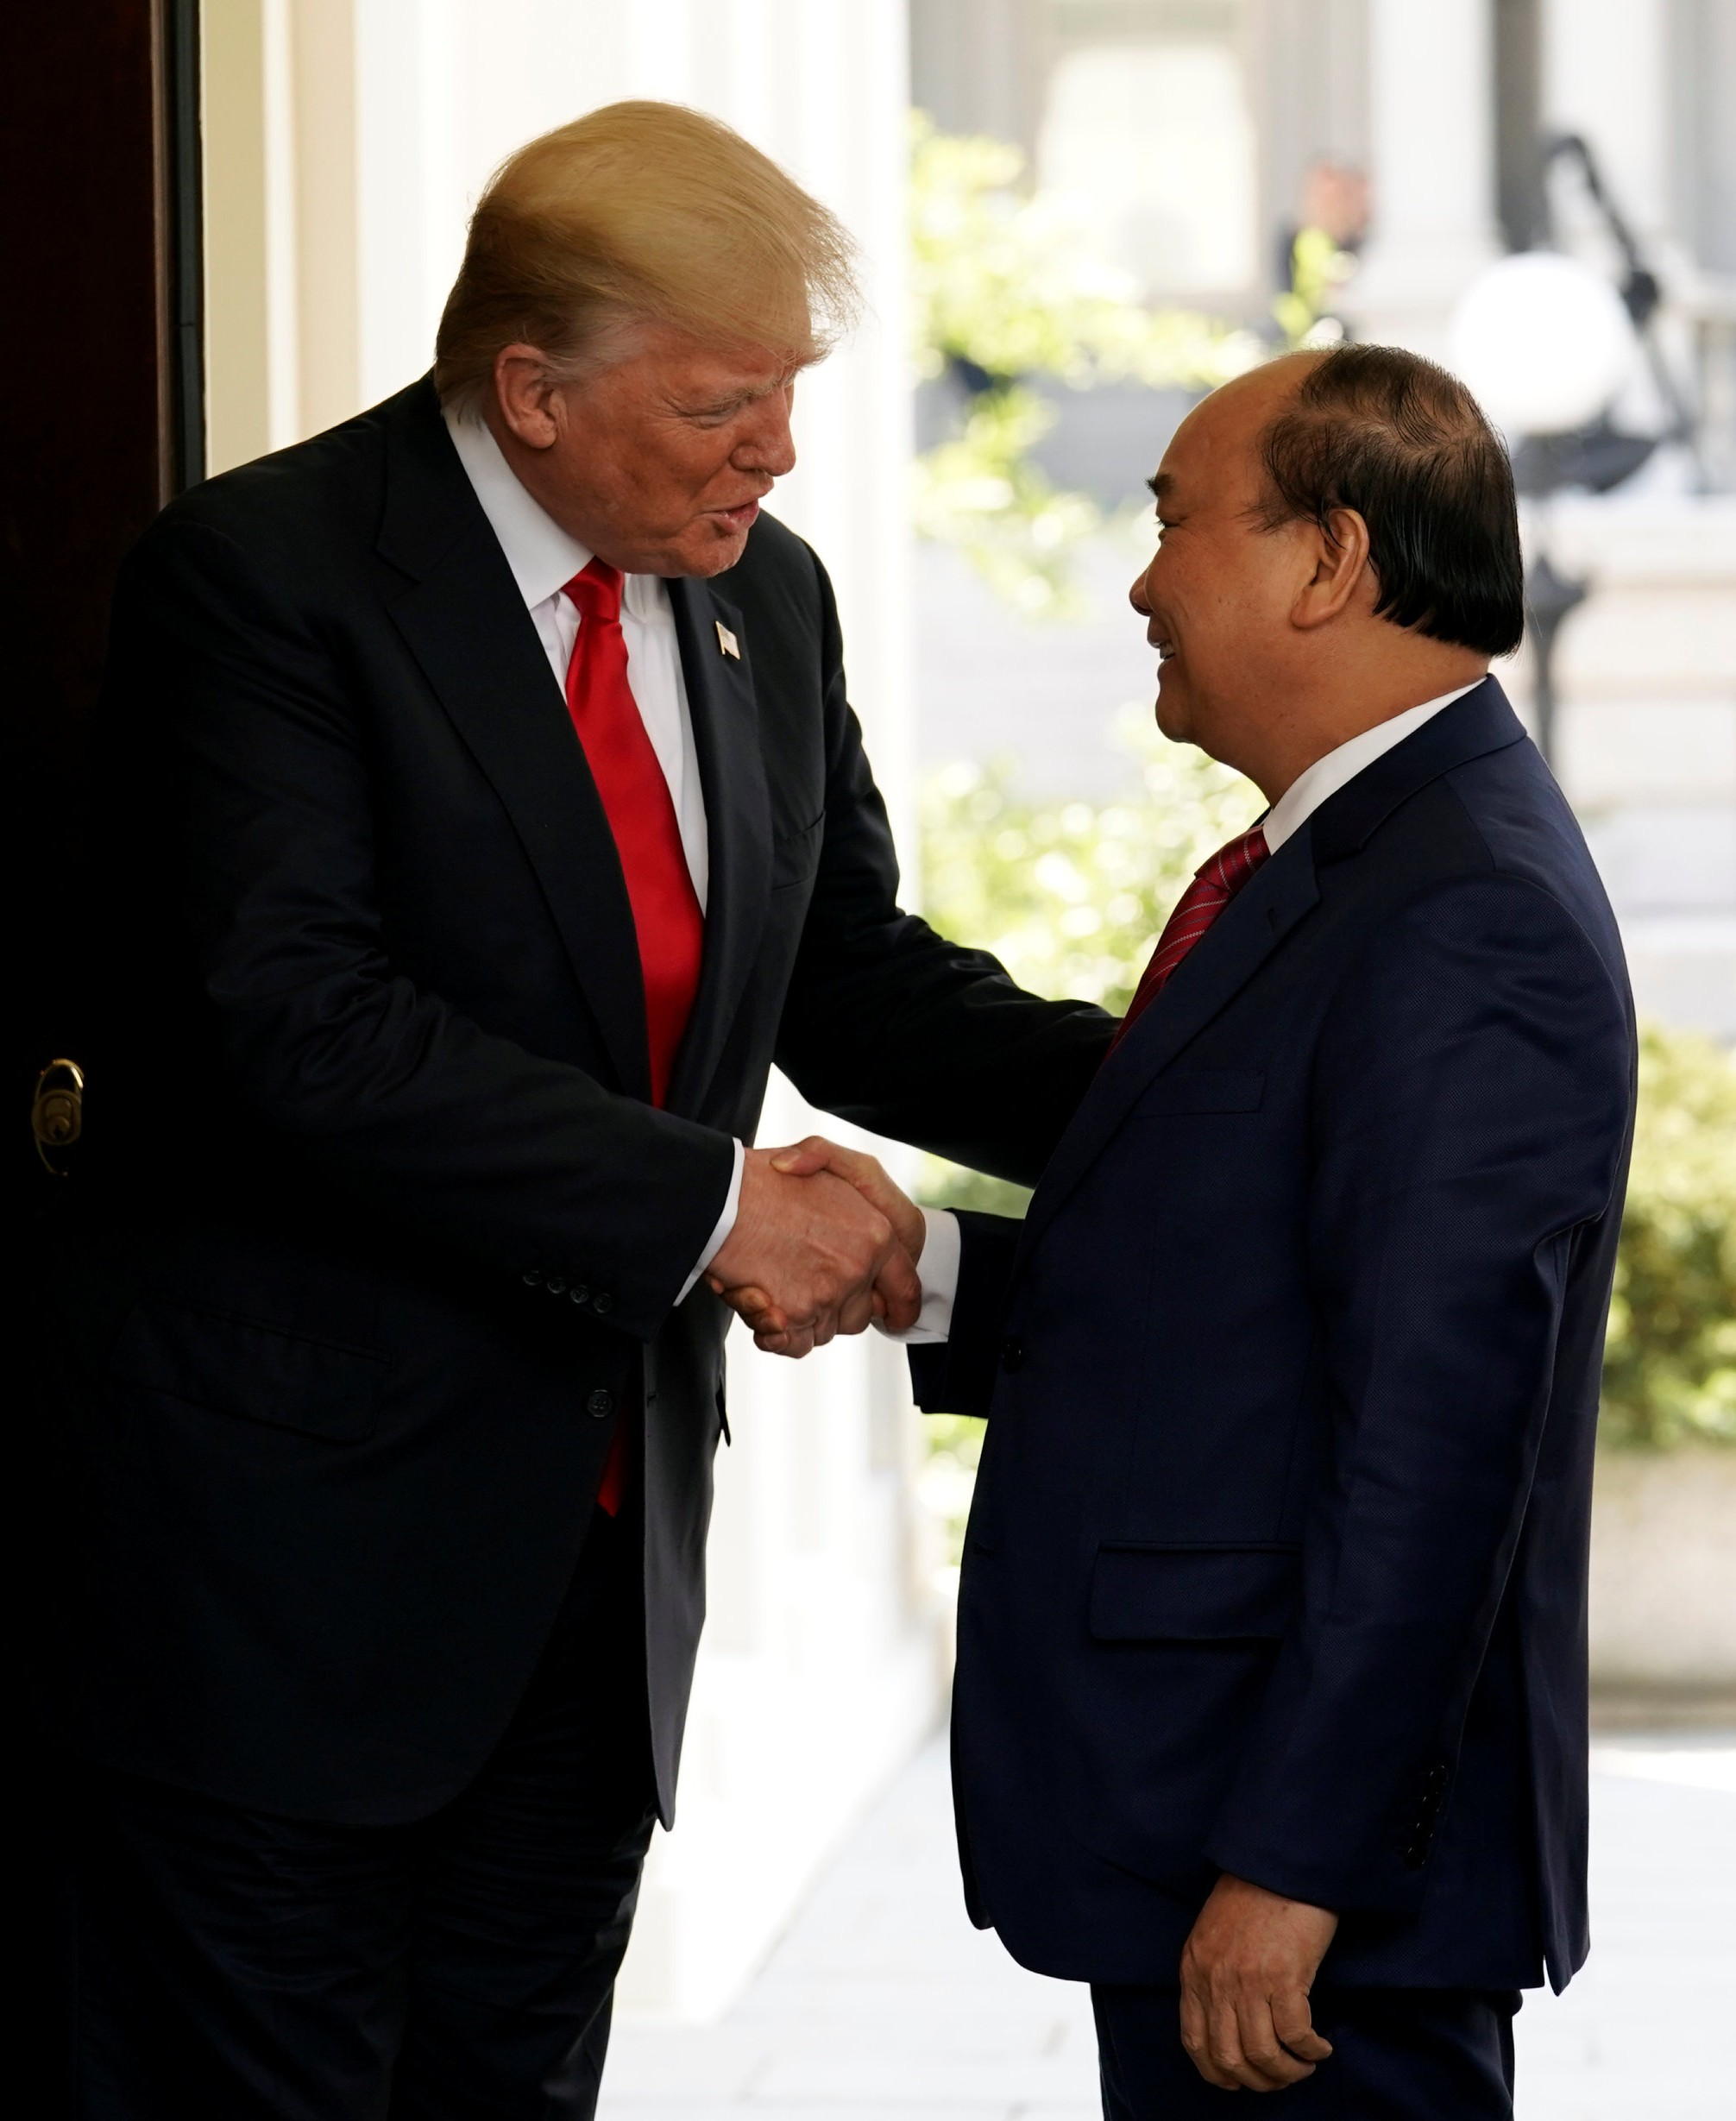 President Donald Trump greets Vietnamese Prime Minister Nguyen Xuan Phuc at the White House in Washington on May 31, 2017. (REUTERS/Kevin Lamarque)